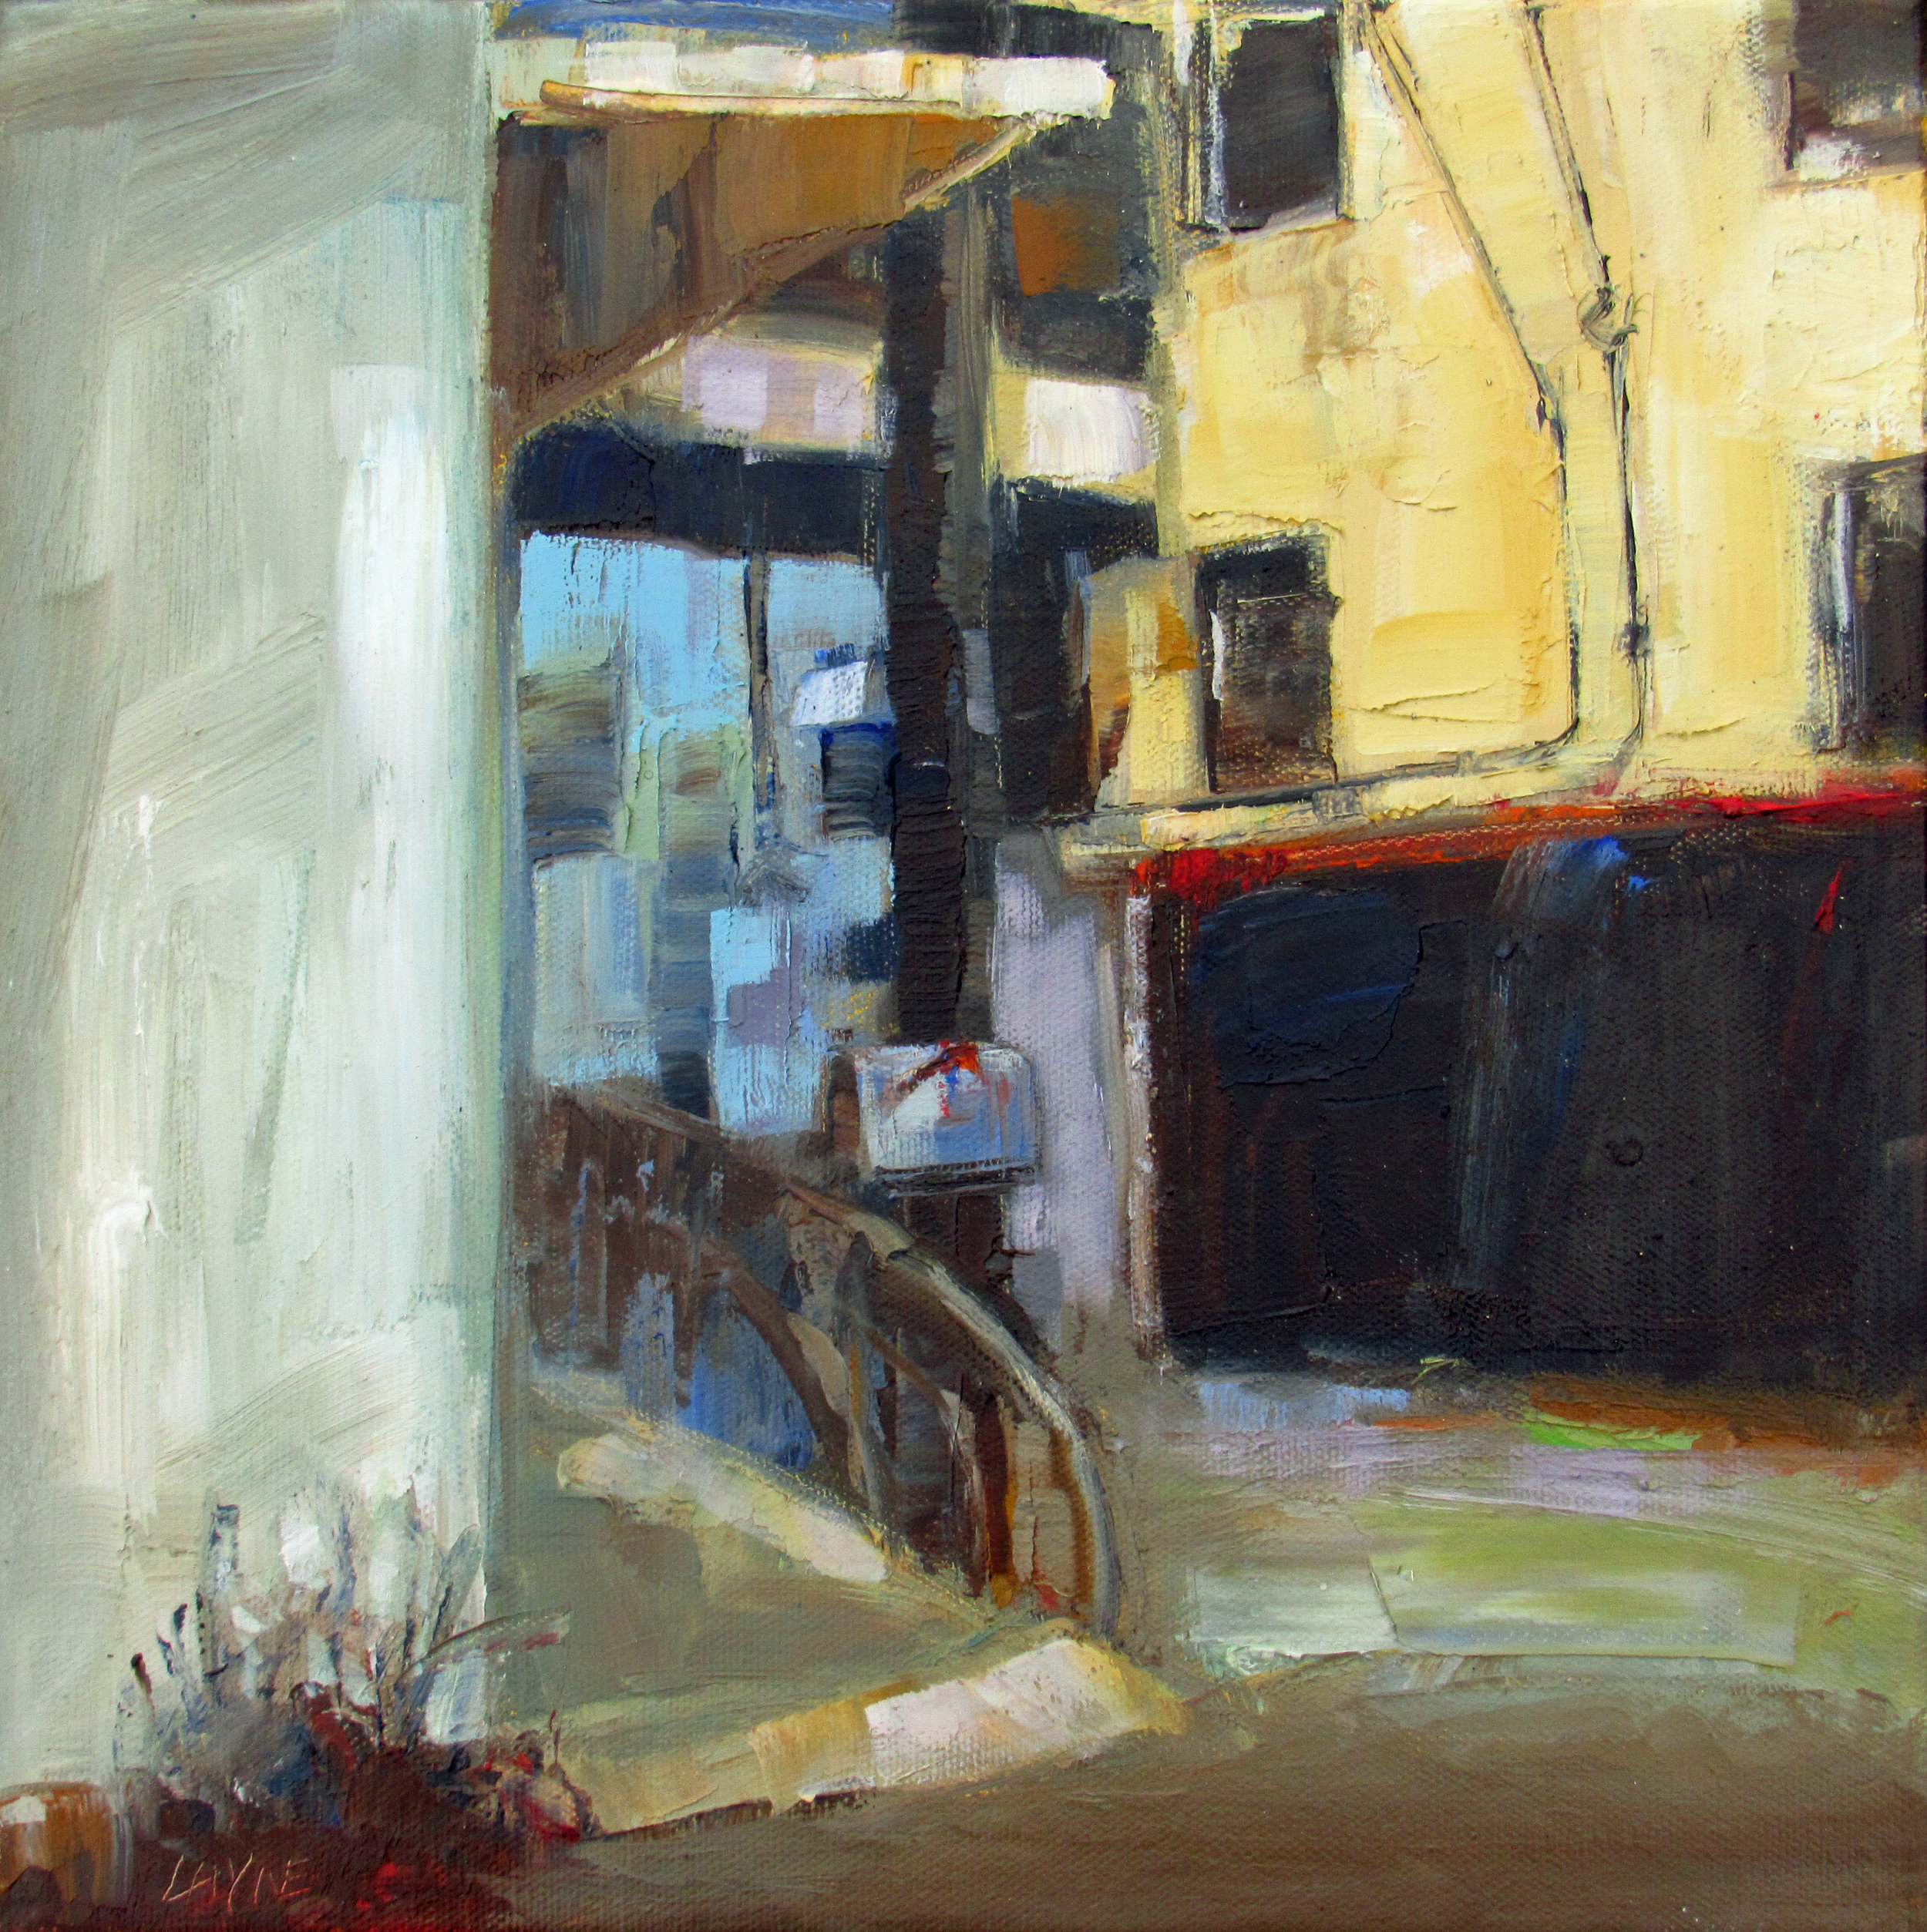 Around the Corner#Oil on Canvas#12 x 12 inches#$580